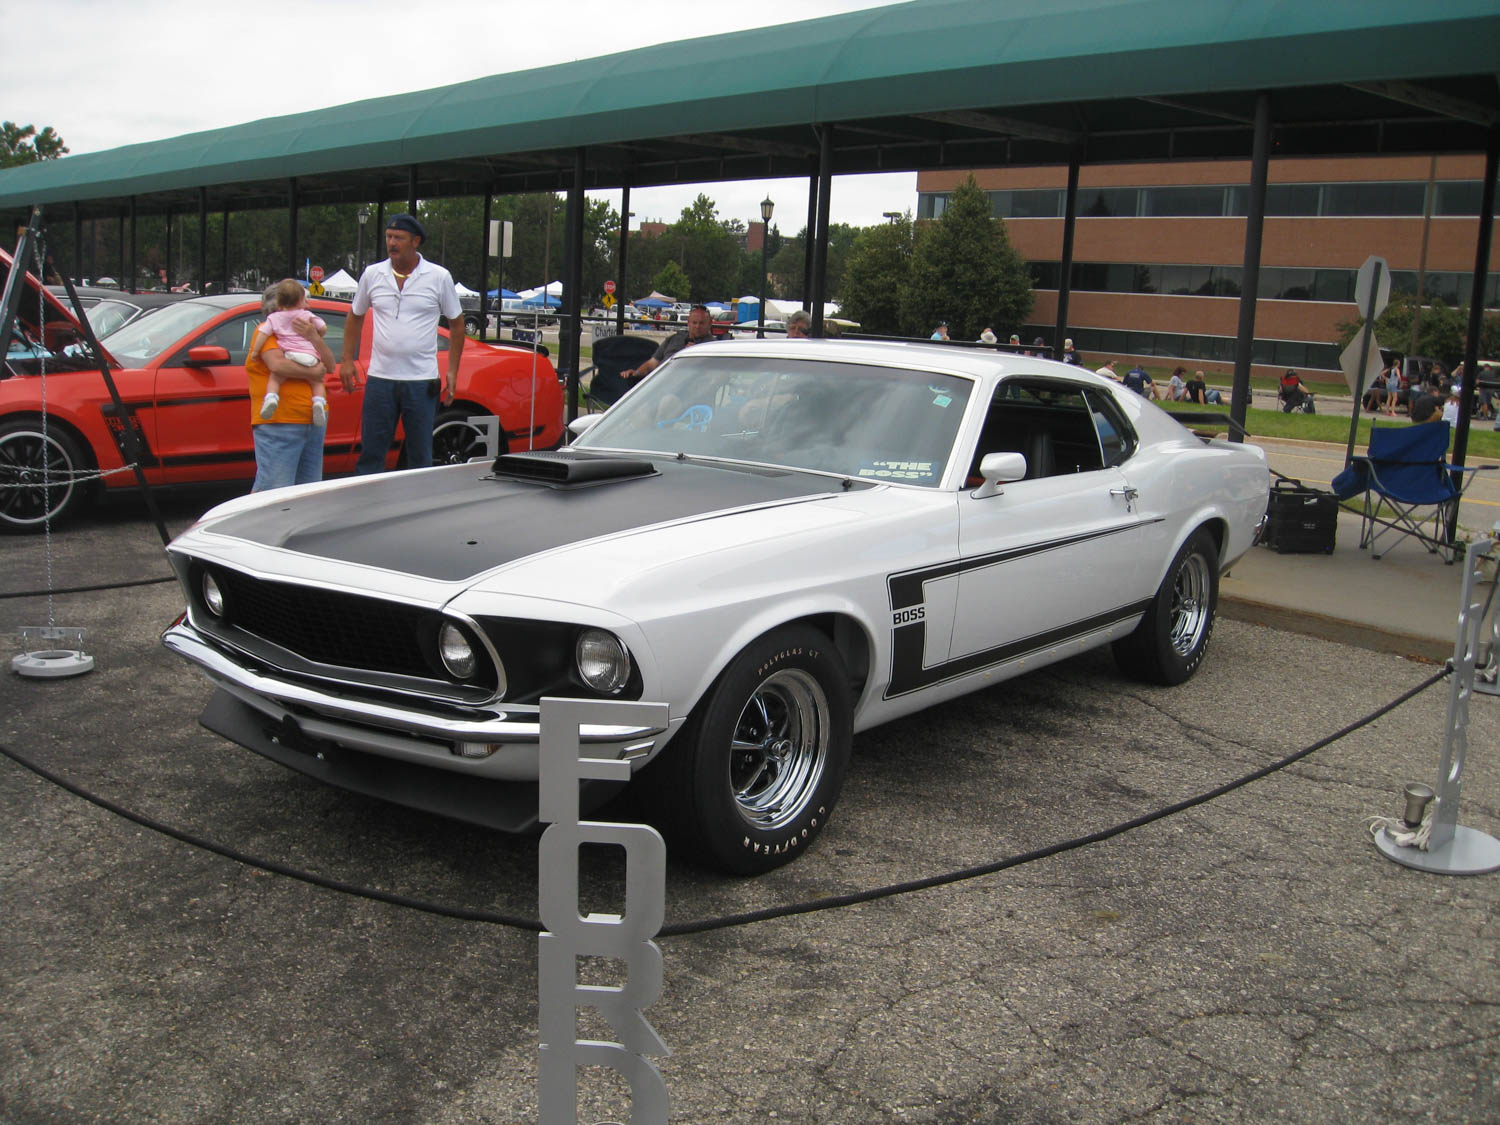 1969 Ford Mustang Boss Prototype front 3/4